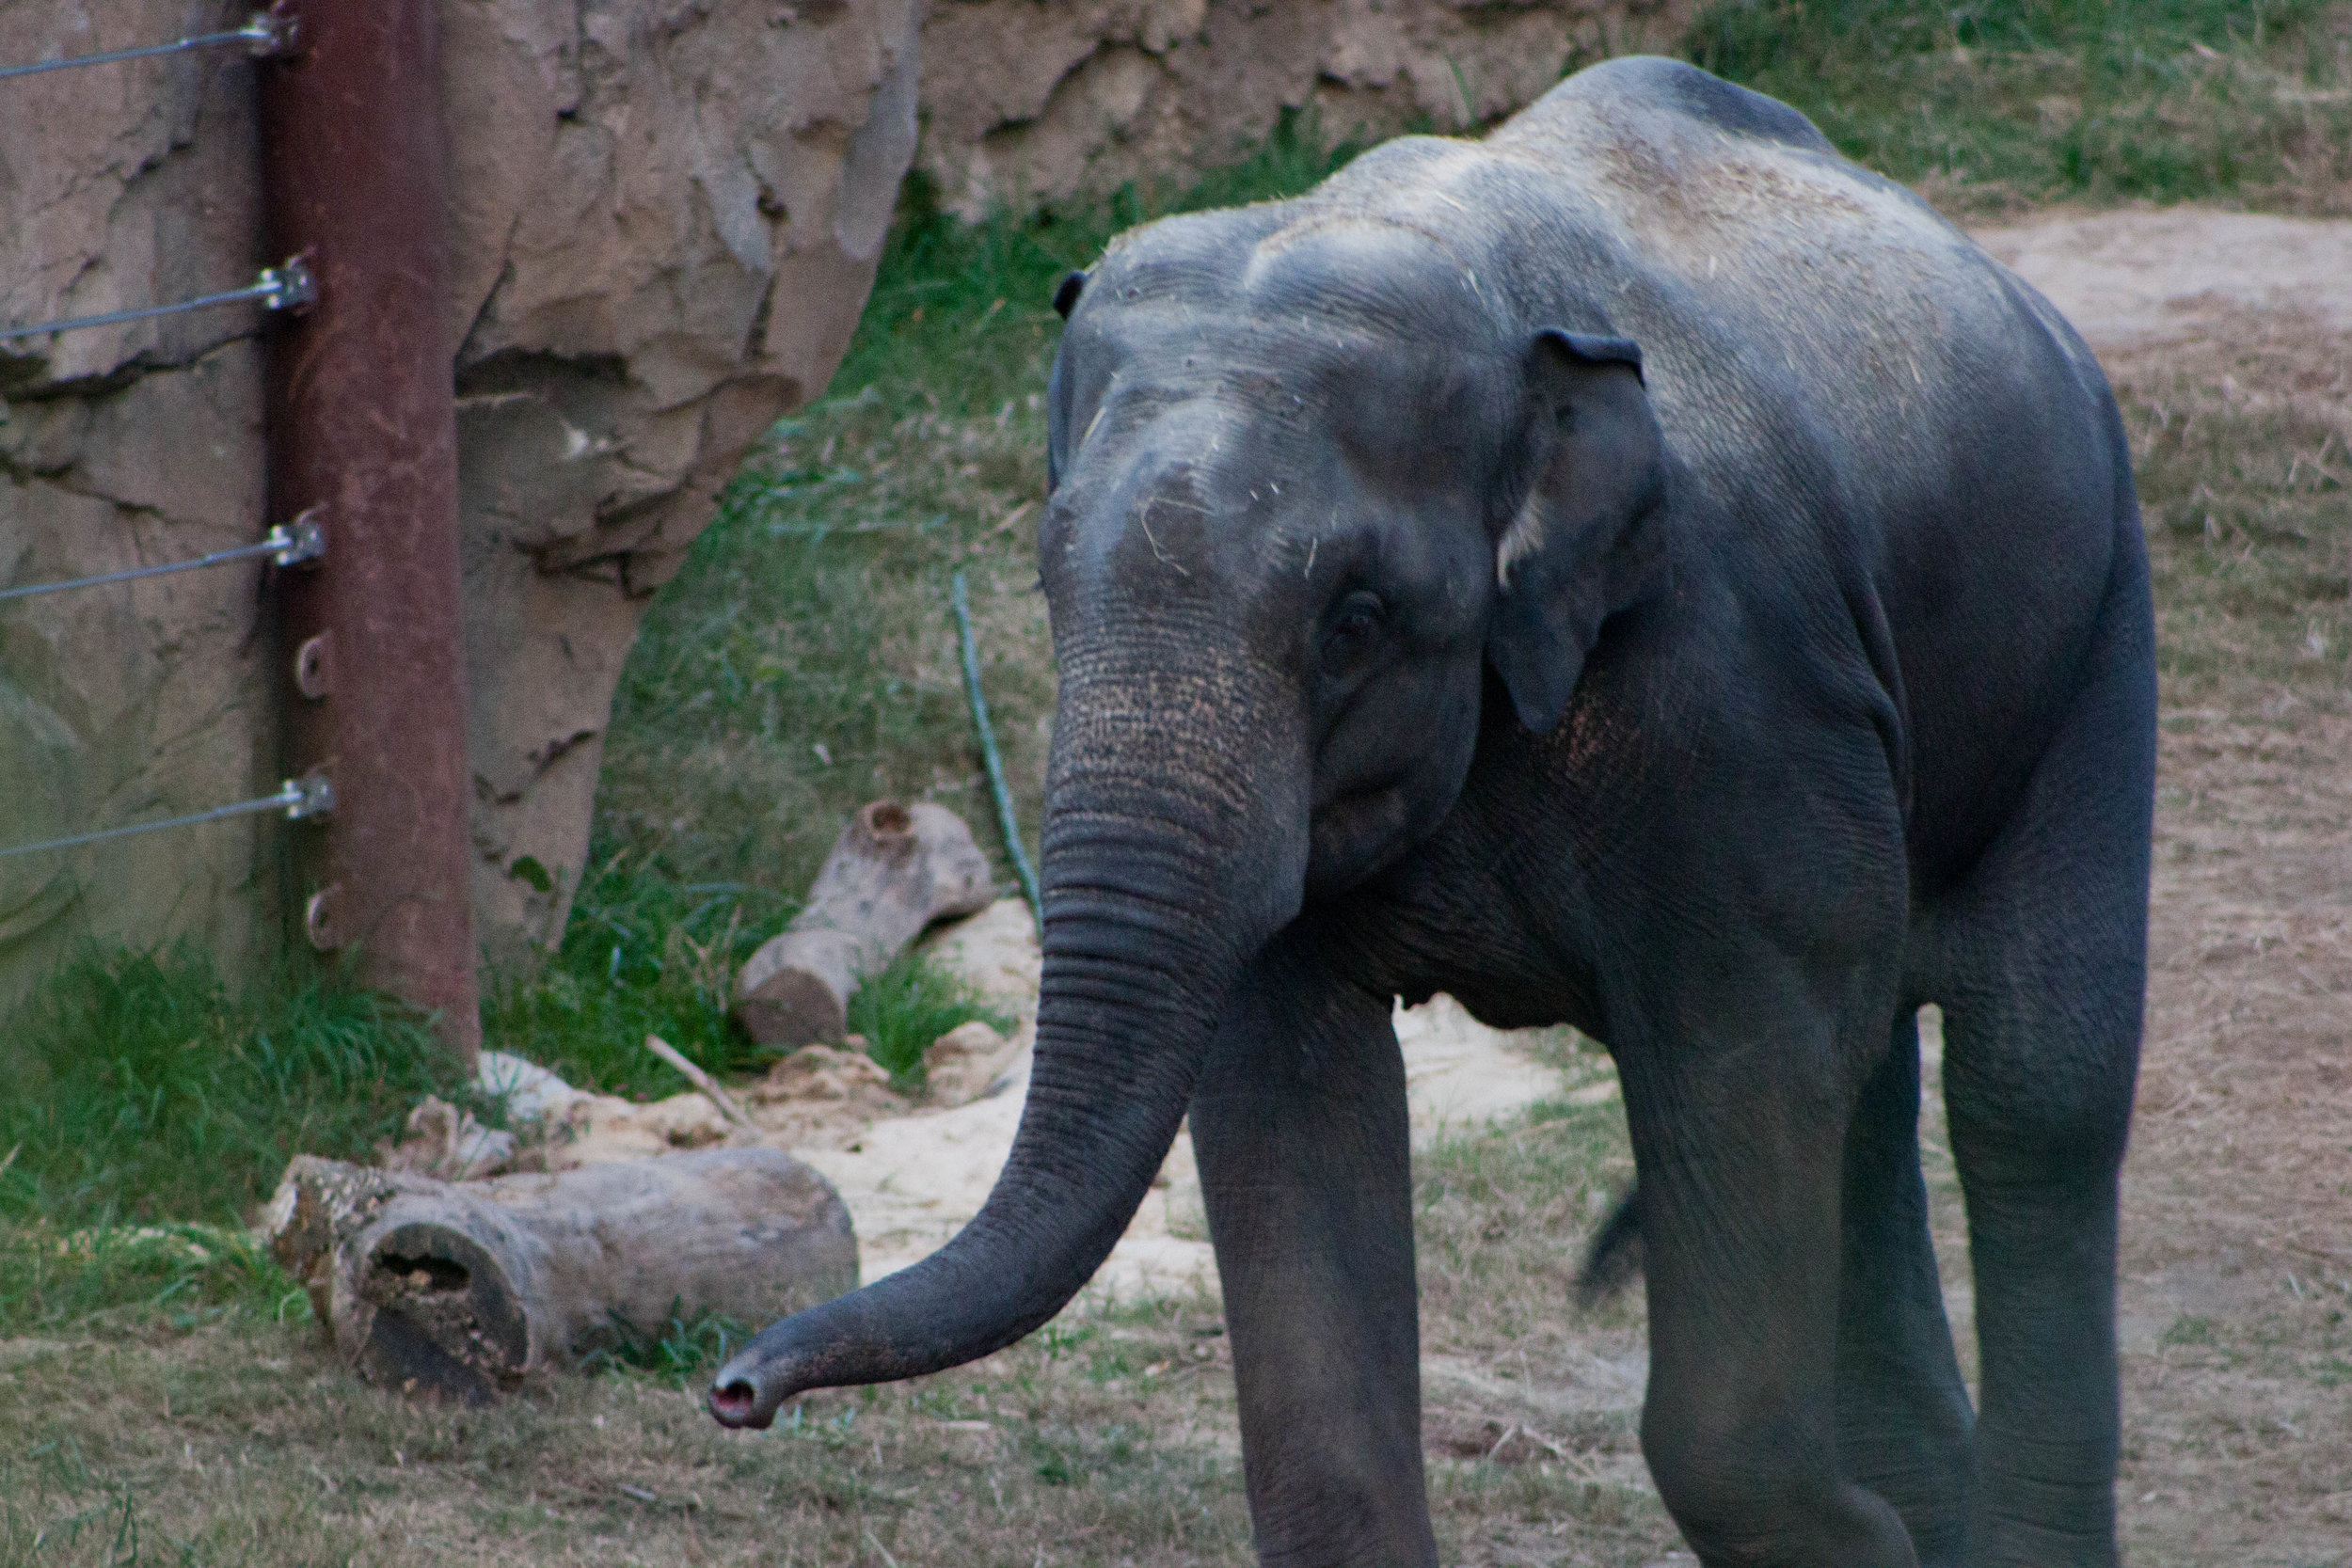 An elephant greets visitors to  the Smithsonian's National Zoo  in Washington, D.C., October 2012.